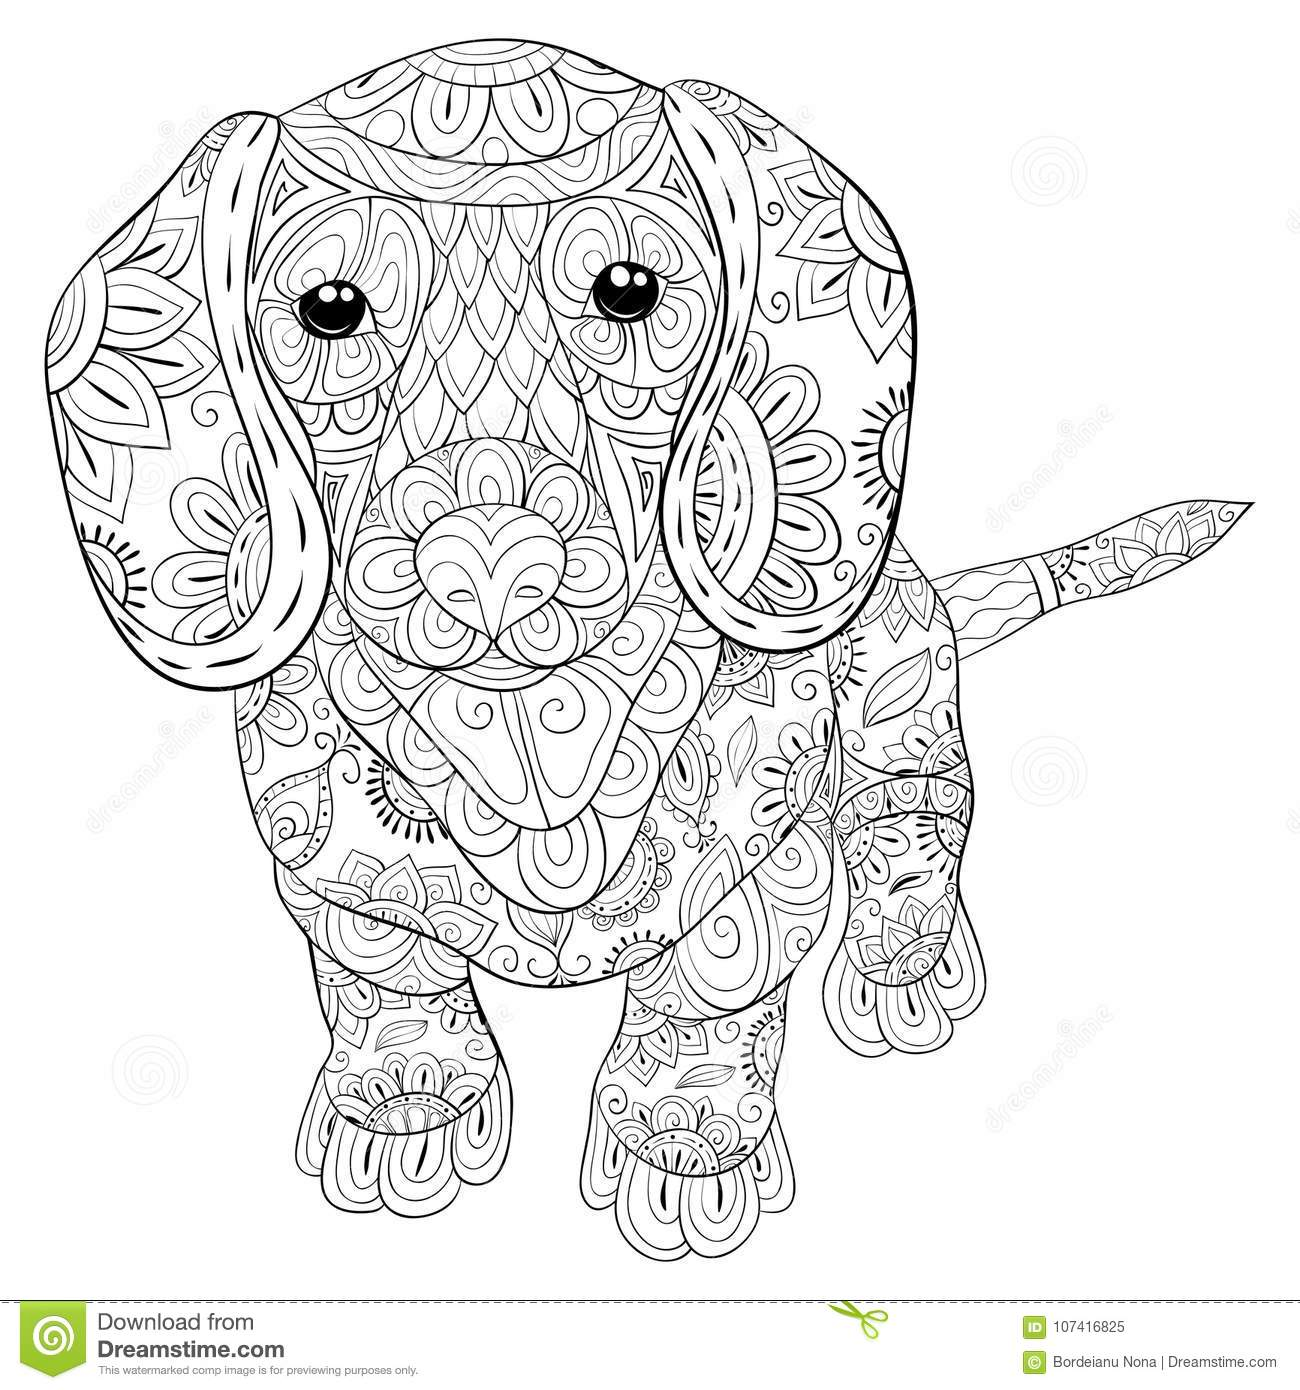 Adult Coloring Page A Cute Isolated Dog For Relaxing.Zen ...